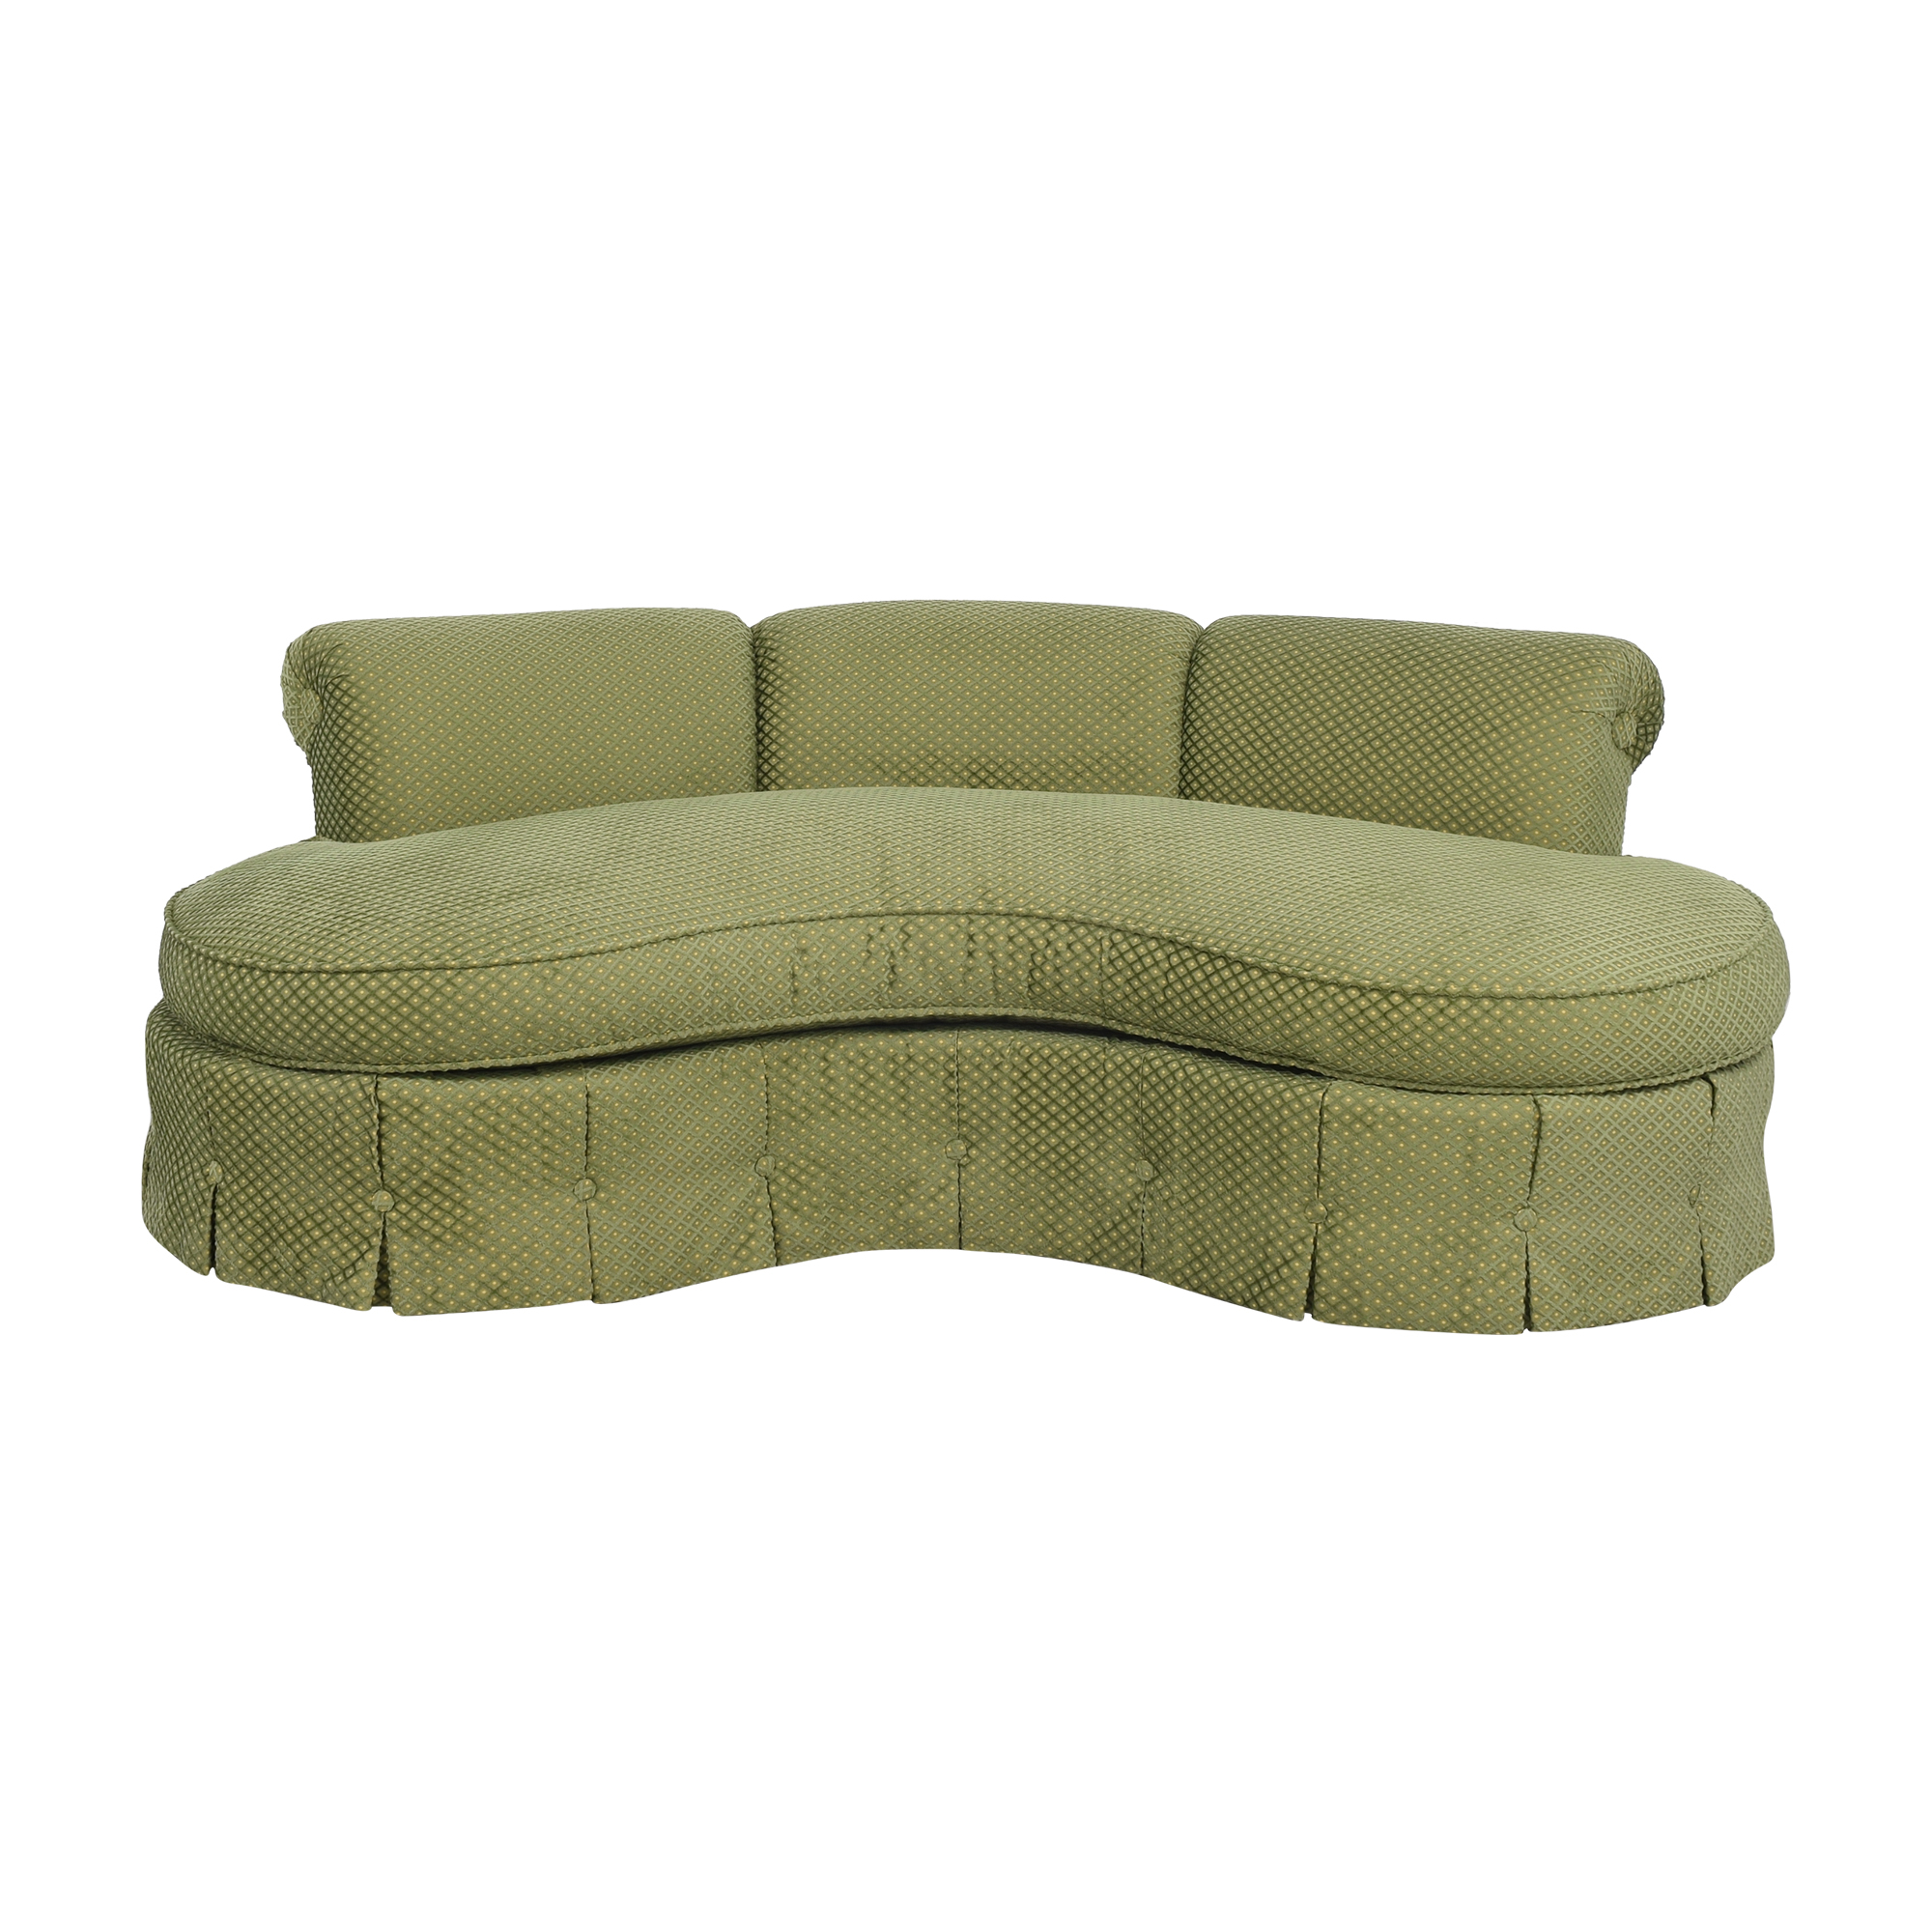 Custom Curved Sofa with Skirted Base and Matching Ottoman Classic Sofas